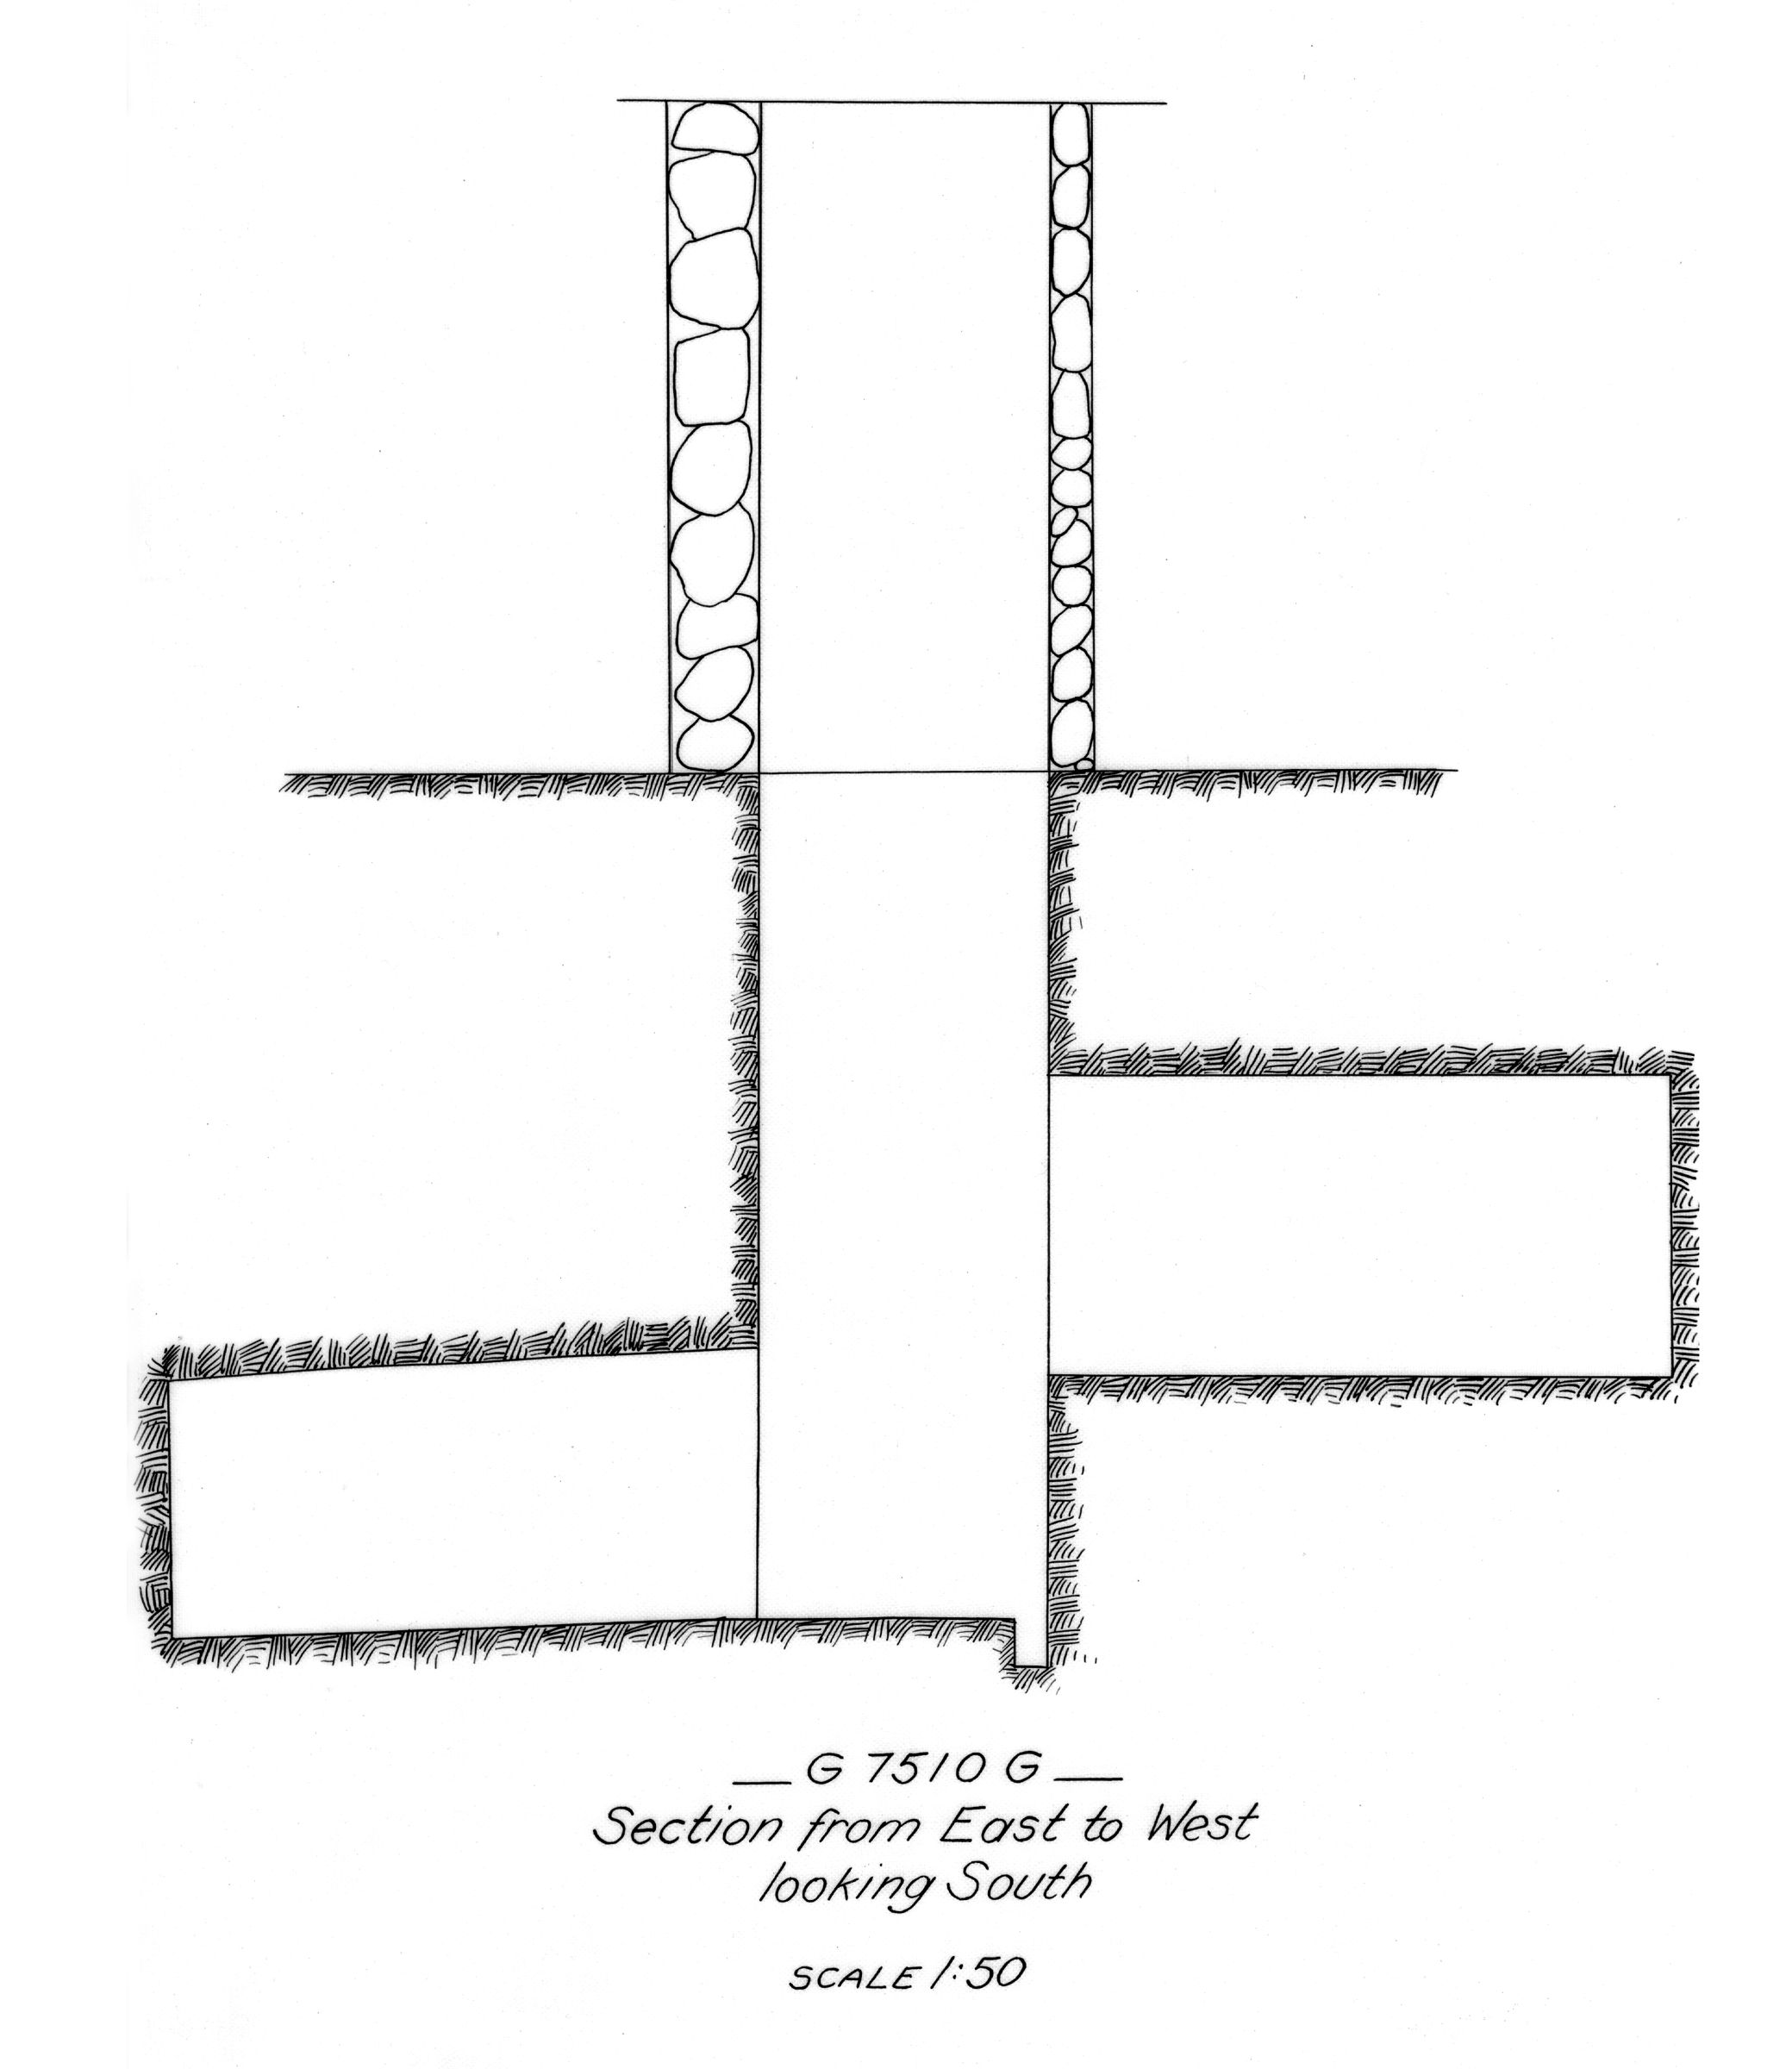 Maps and plans: G 7510, Shaft G